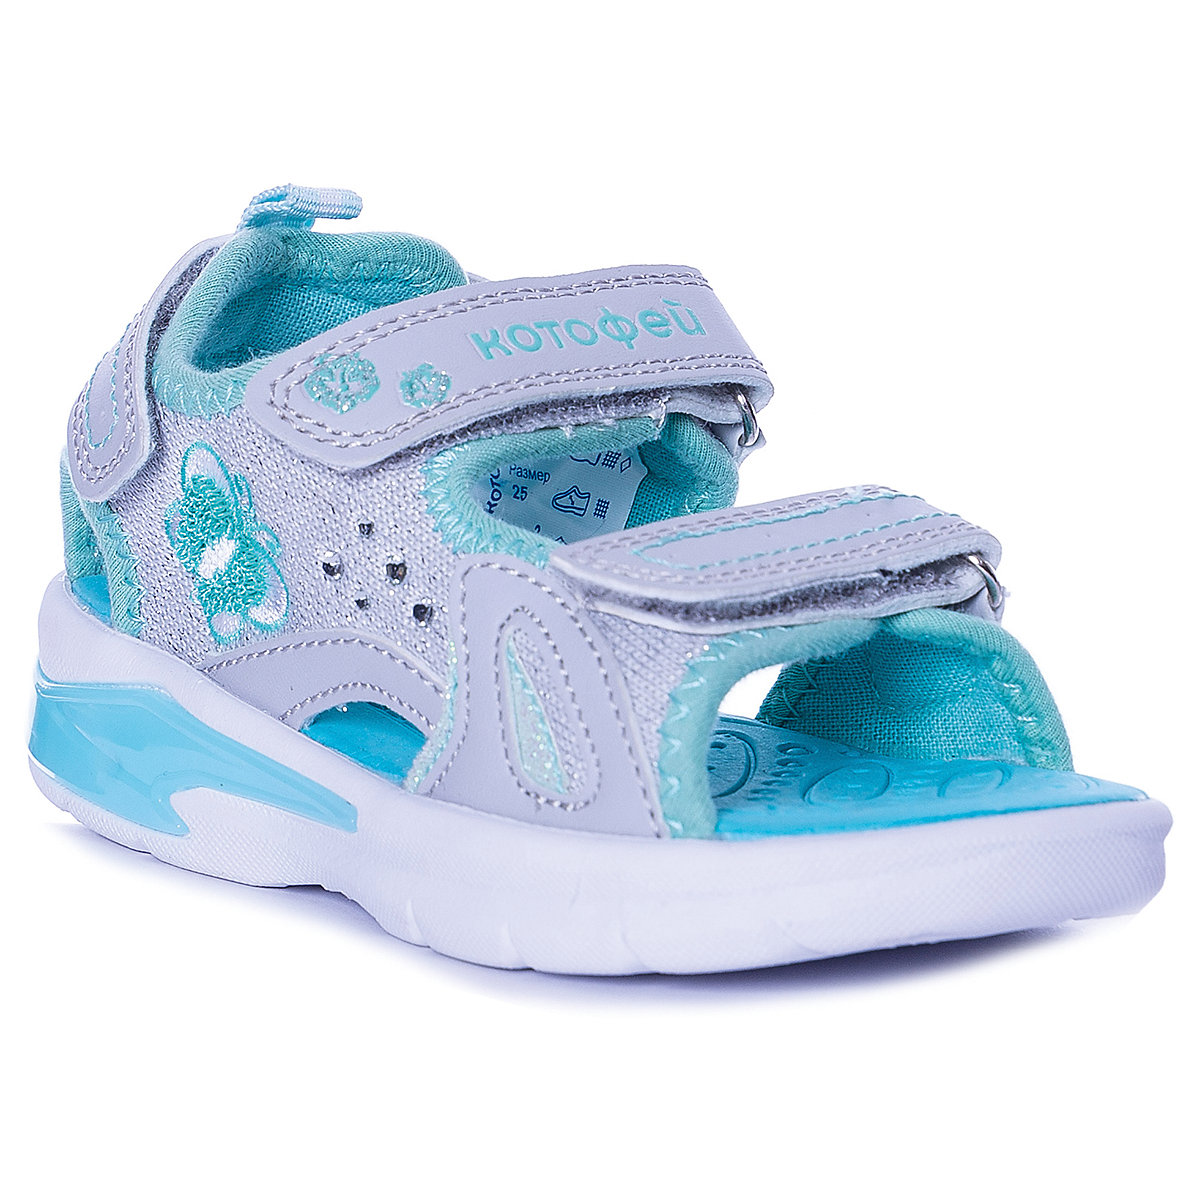 KOTOFEY Sandals 11319841 Children's Shoes Comfortable And Light Girls And Boys